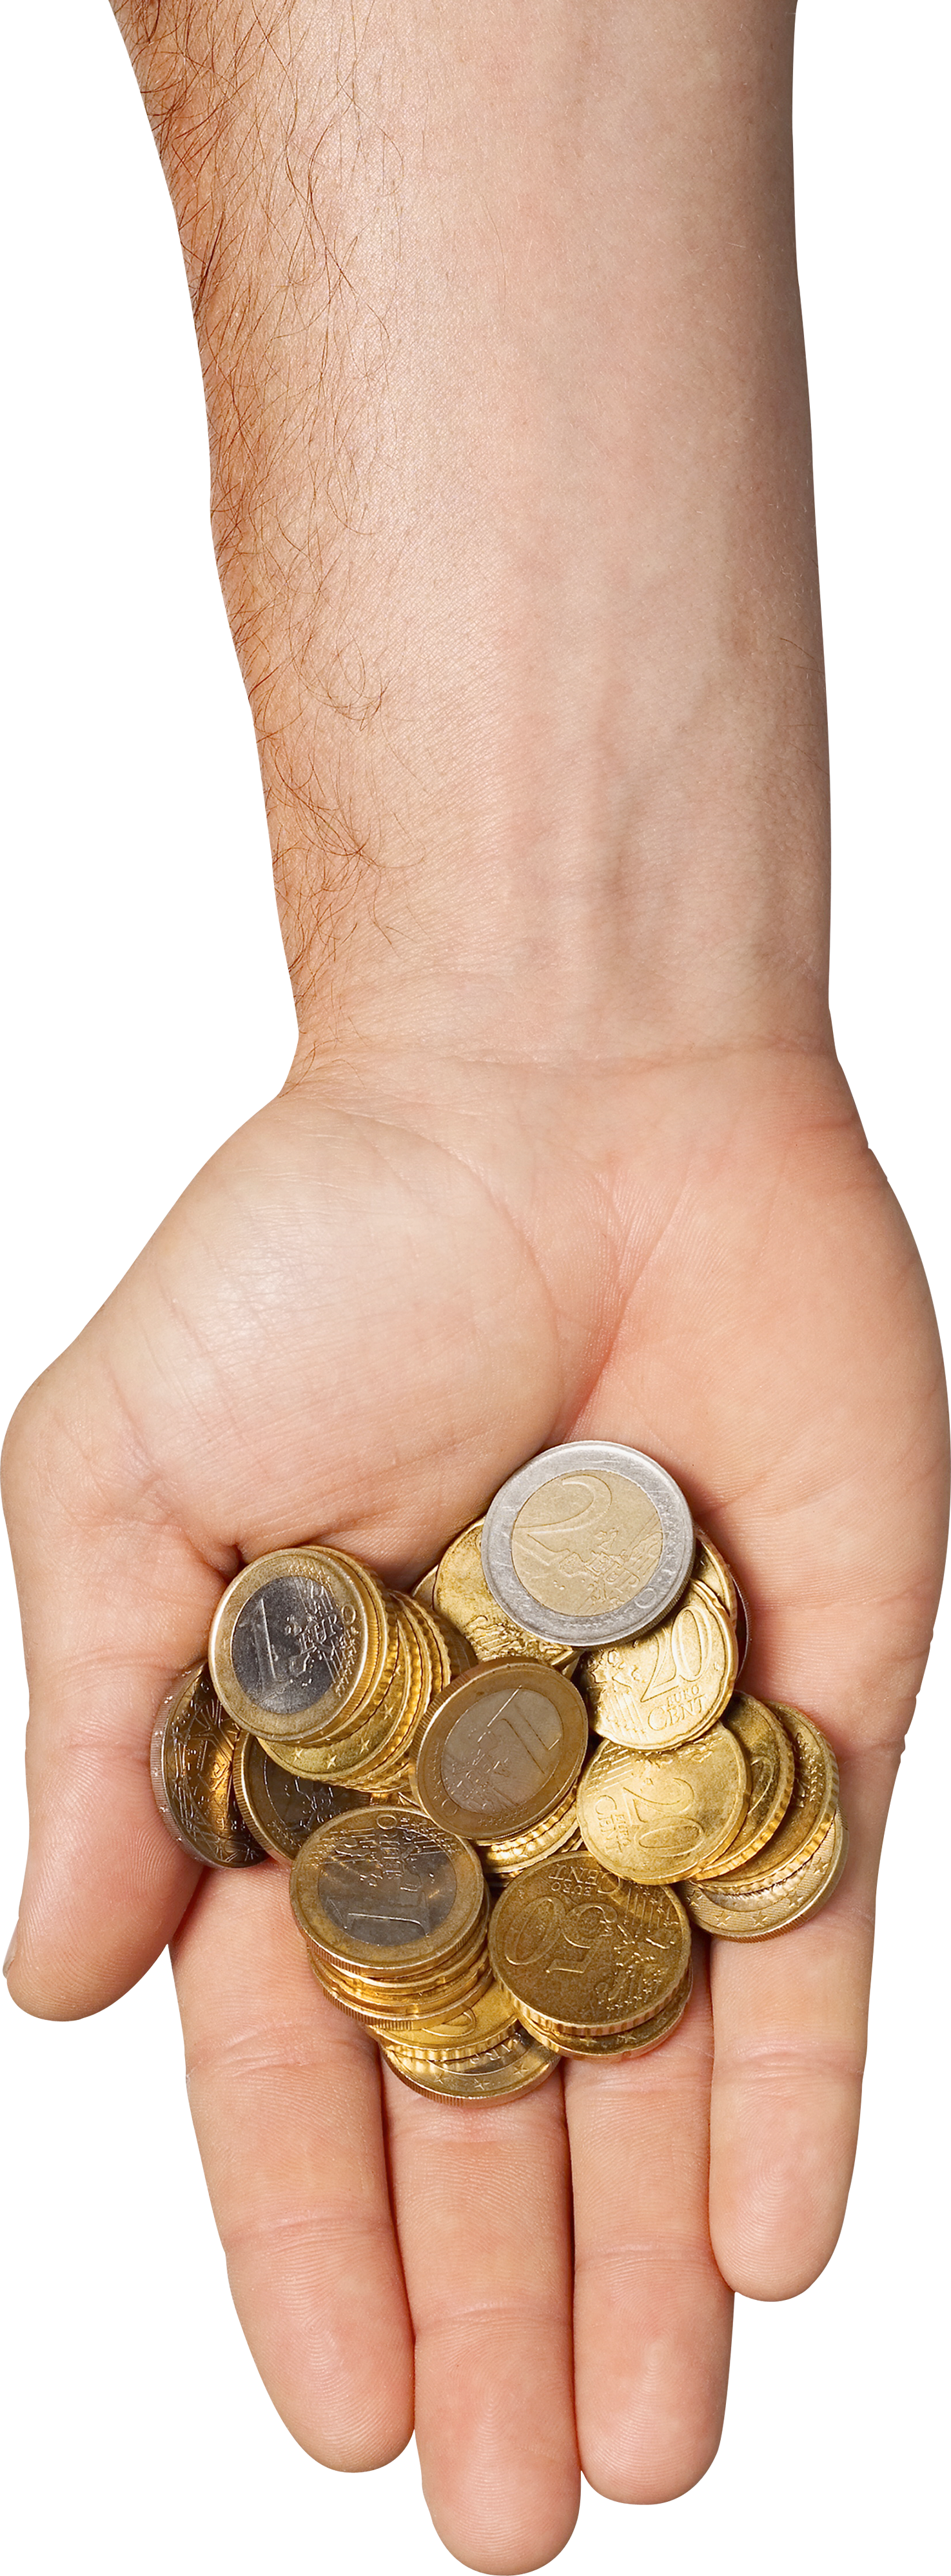 Hands free images pictures. Hand holding money png